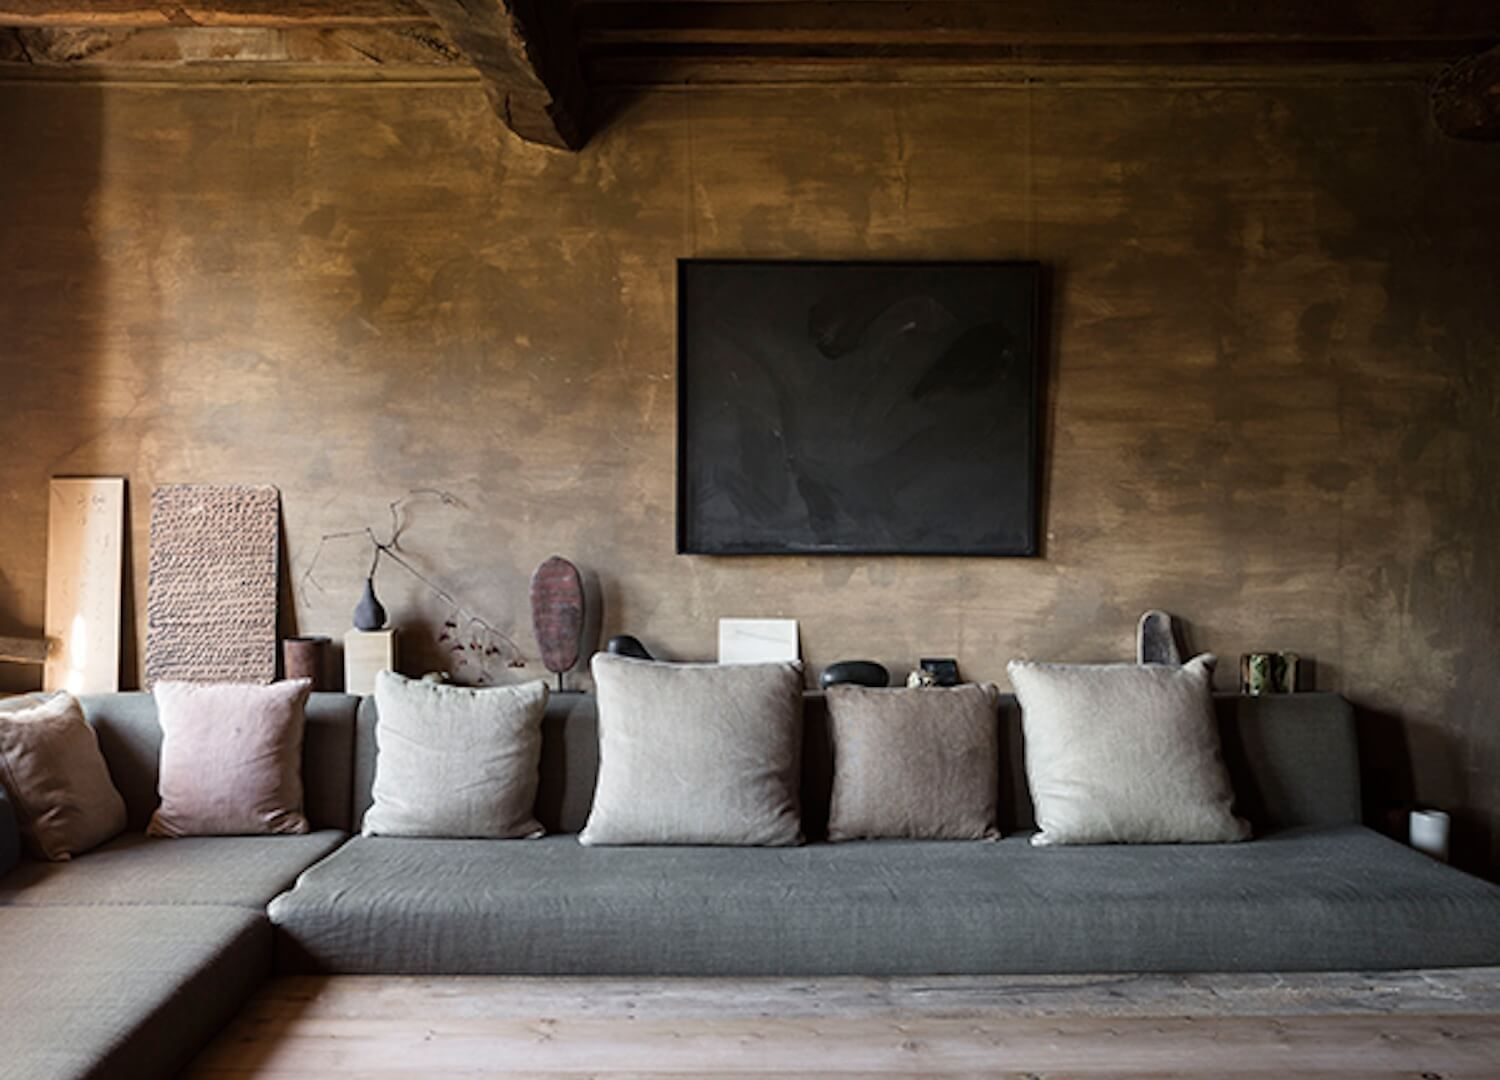 Muebles Wabi Sabi - Interior Trends Interiors Design Trends And Diy Furniture[mjhdah]https://es.habcdn.com/photos/project/big/wabi-sabi-naturalidad73_812868.jpg